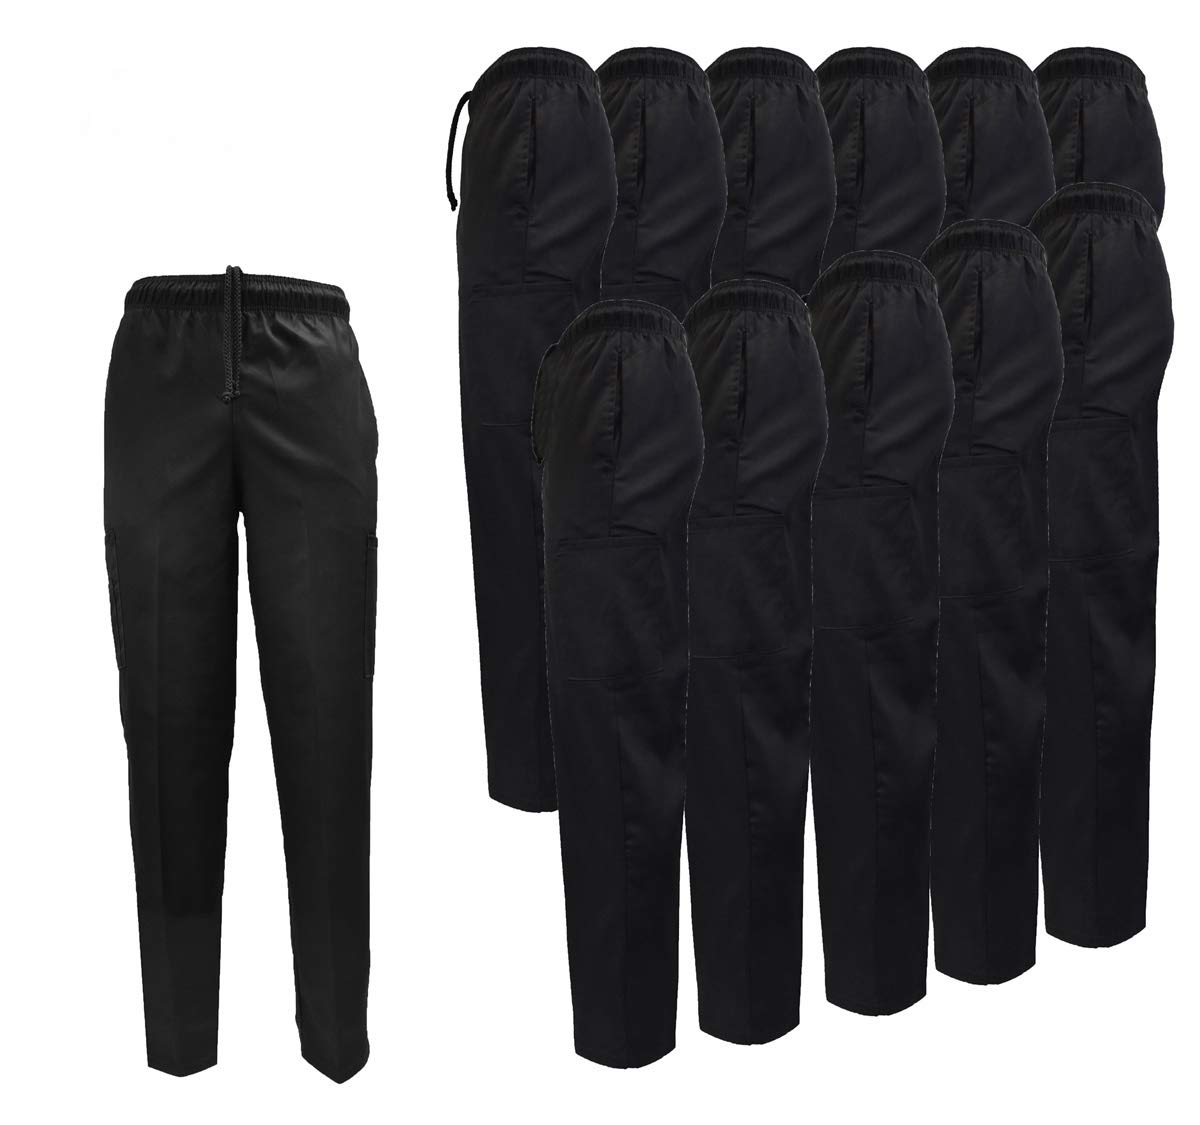 Natural Uniforms Classic 6 Pocket Black Chef Pants with Multi-Pack Quantities Available (12, Medium) by Natural Uniforms